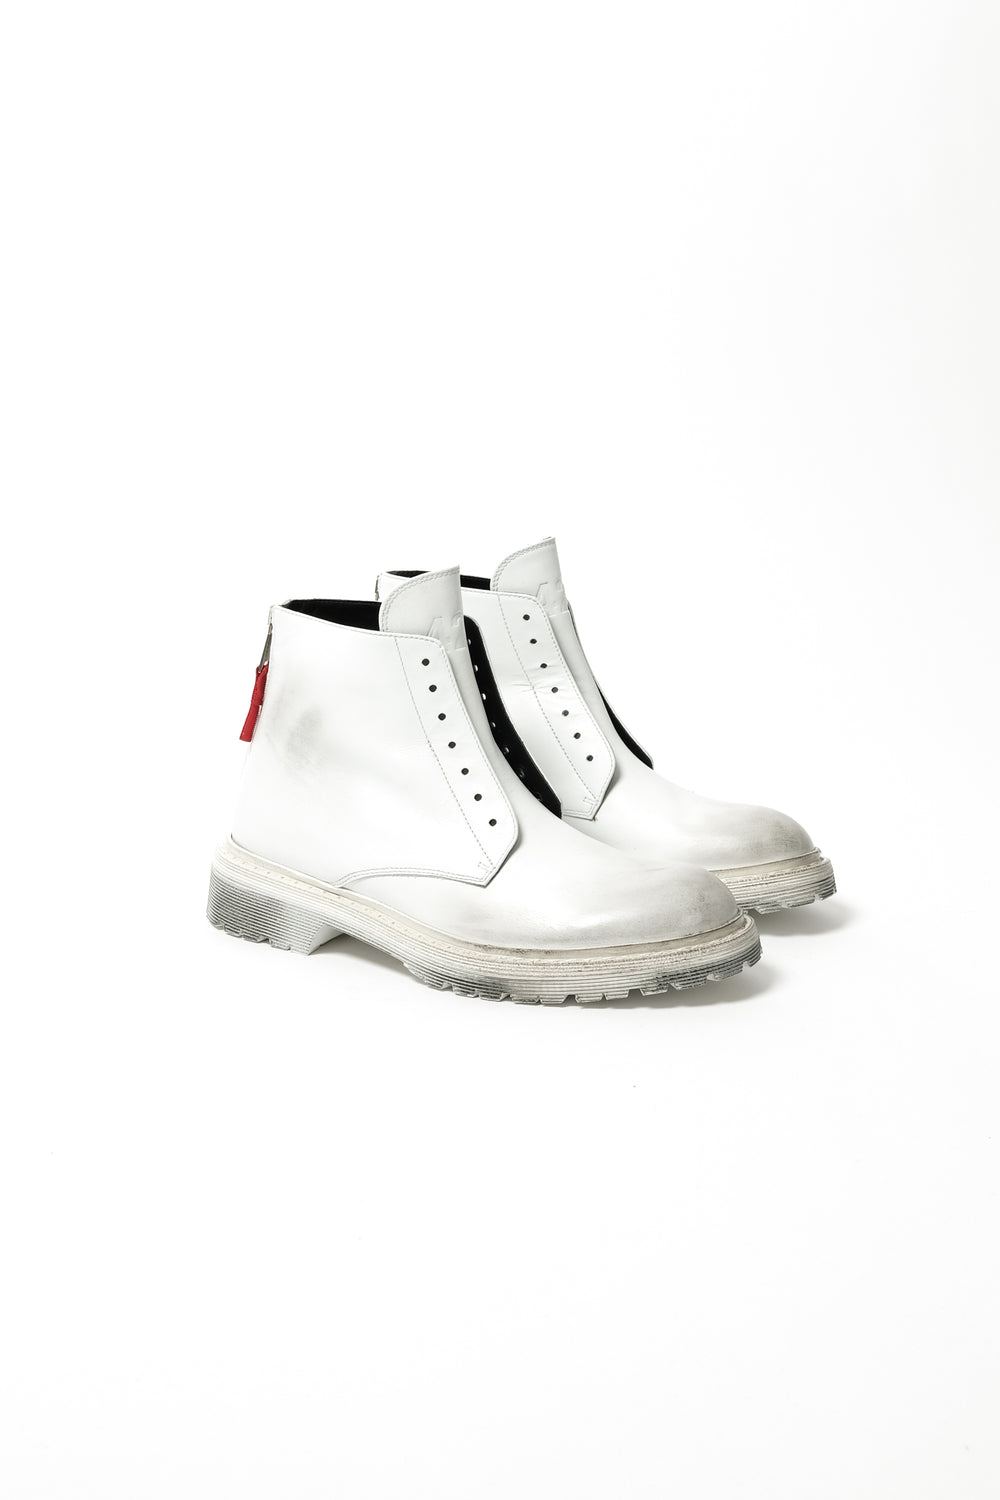 424 High Top Distressed Lace Less Boots In White